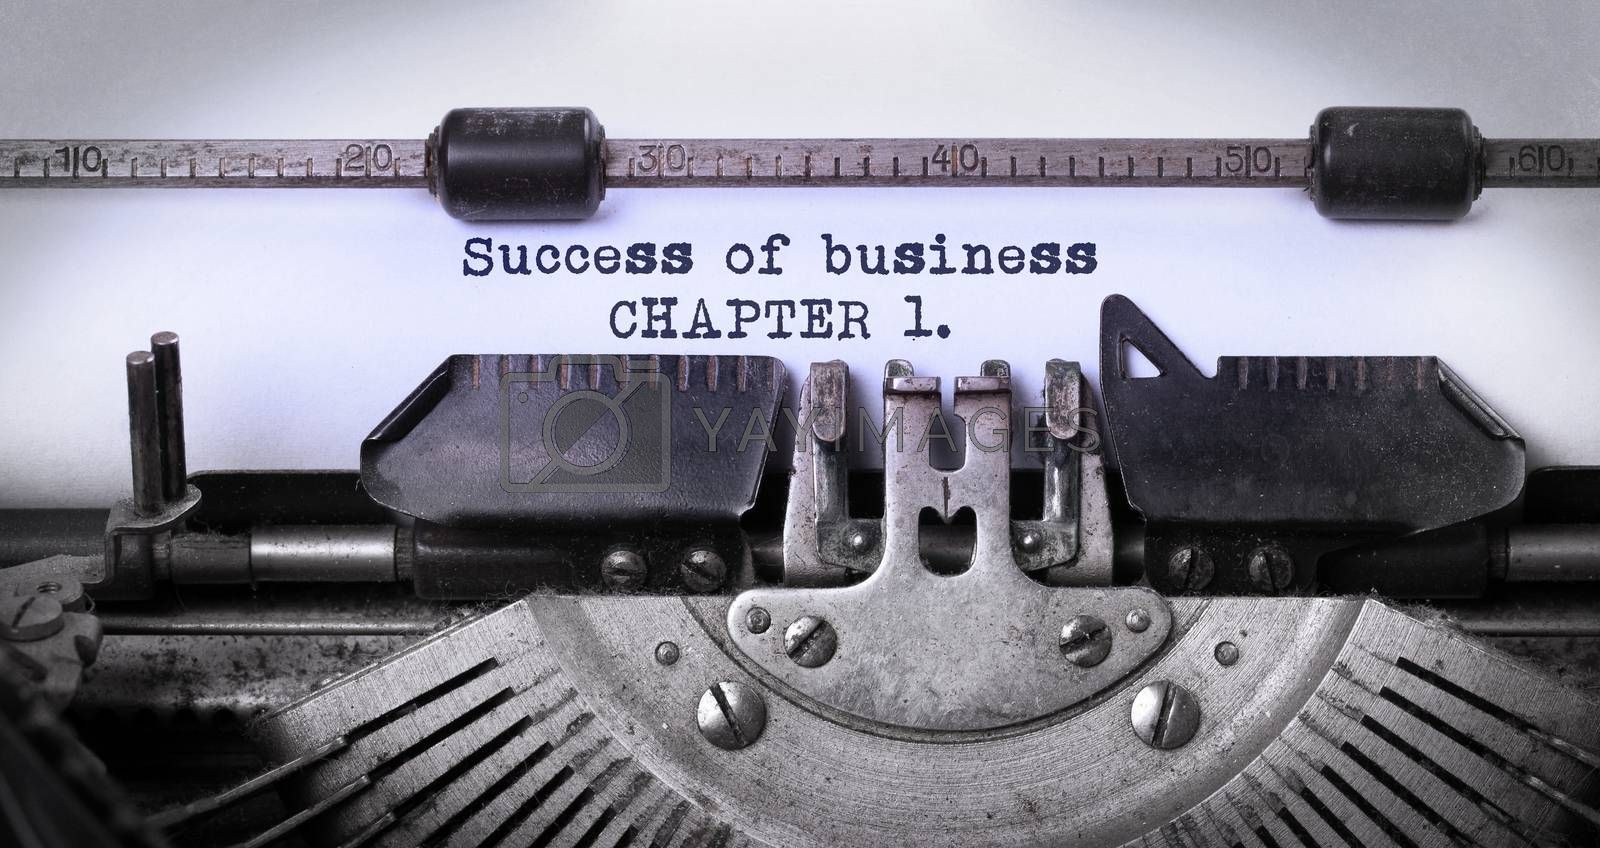 Vintage inscription made by old typewriter, success of business, chapter 1